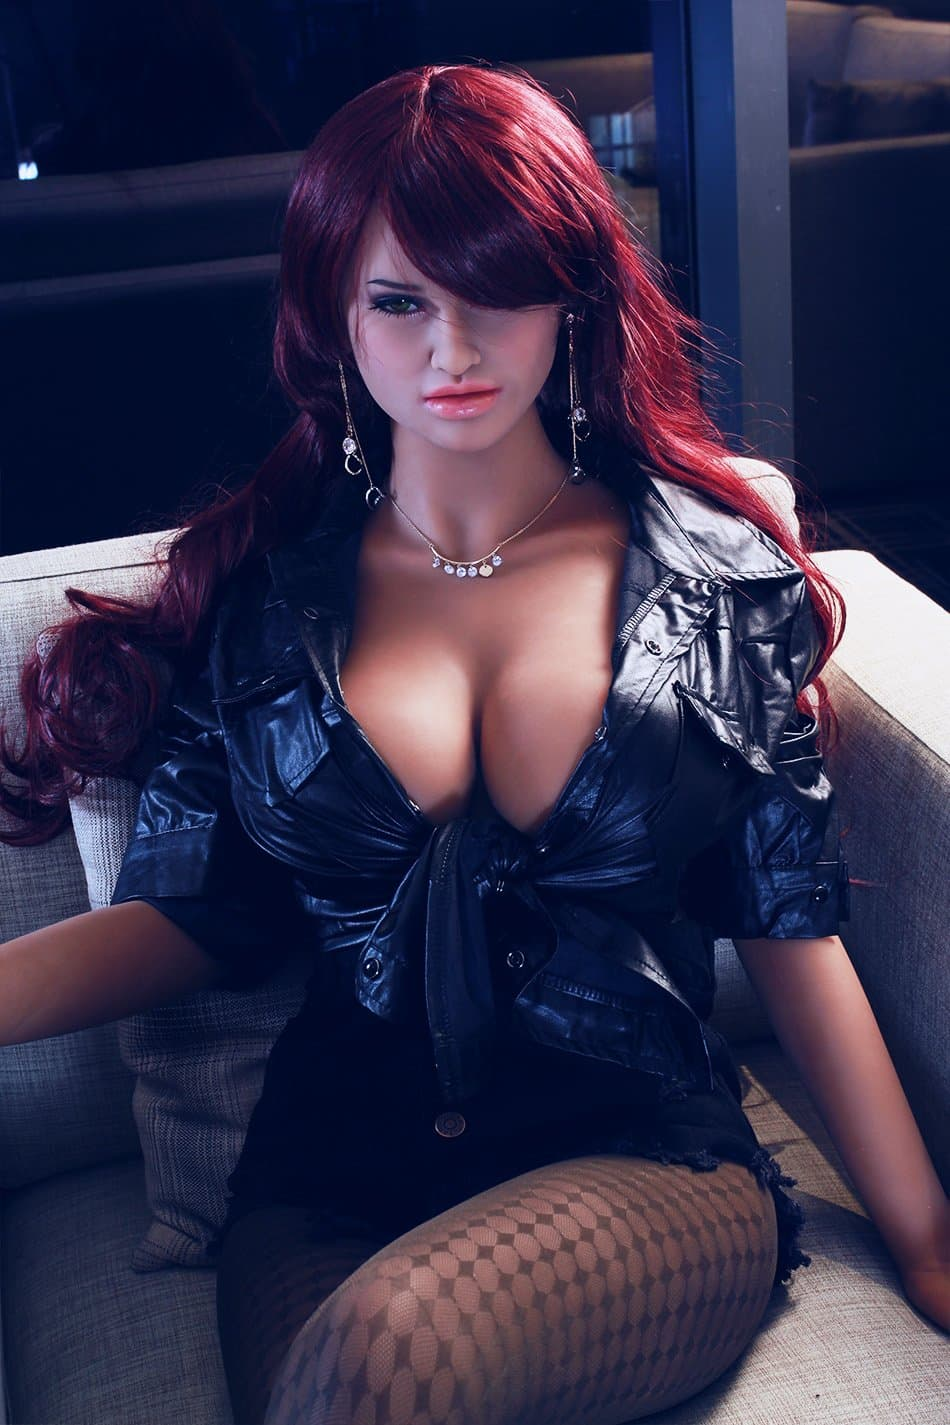 corina 165cm jy big boobs athletic red hair tan skin tpe sex doll